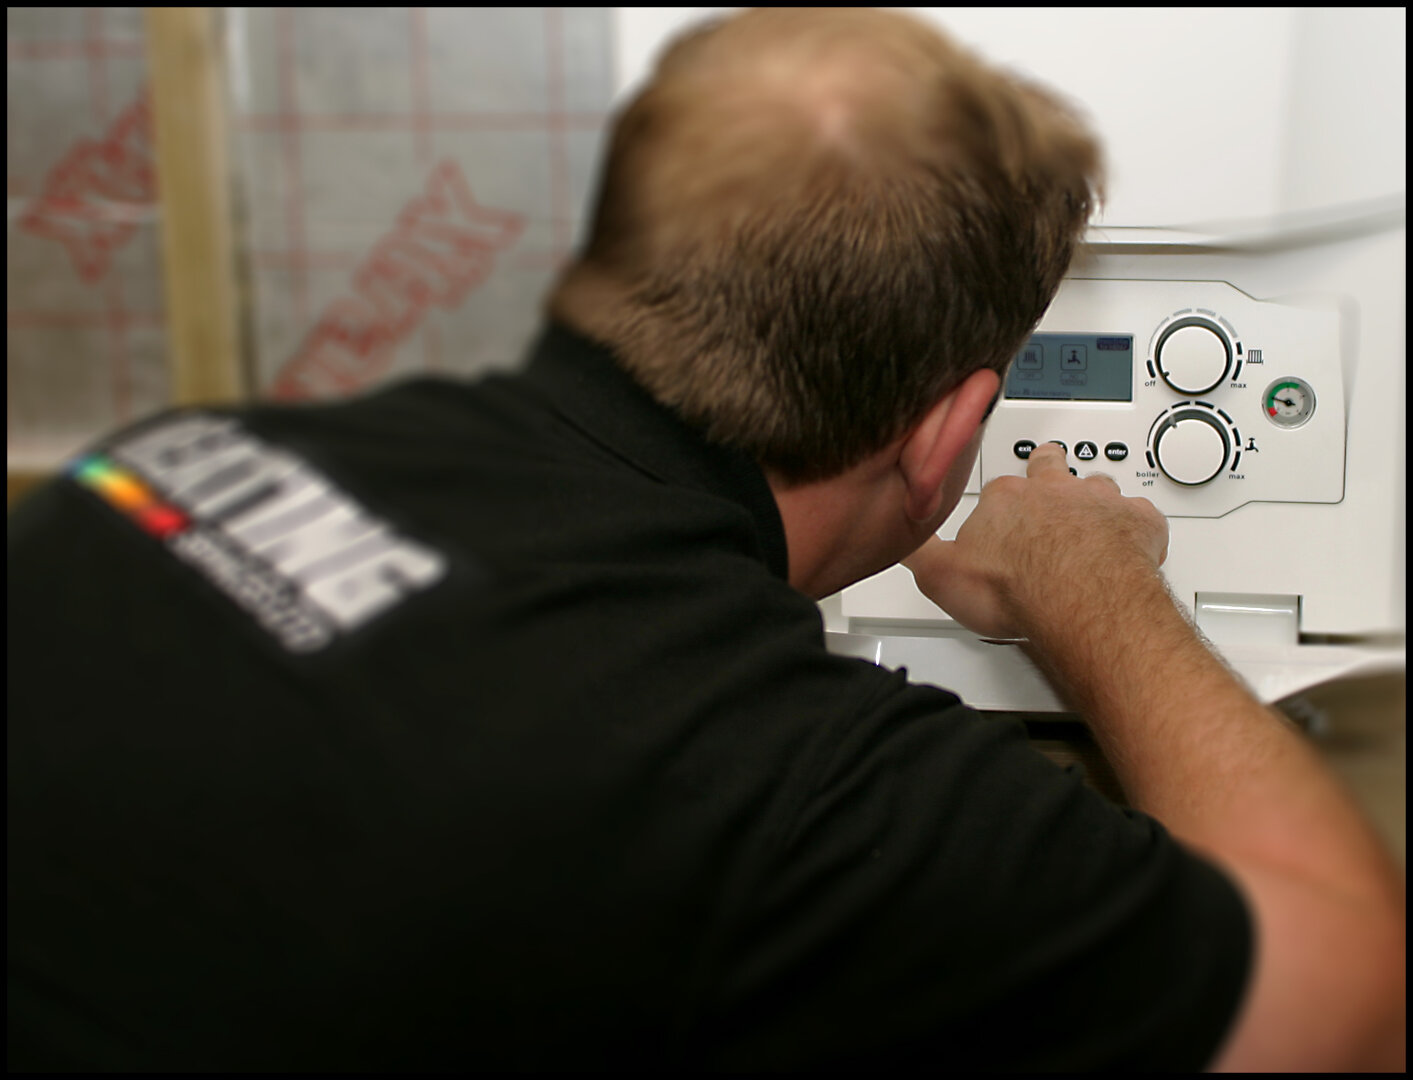 Plumbers Boiler Installation Service and Repairs and Bathroom Design and Installation by Heating Services Ltd in Godstone (2)